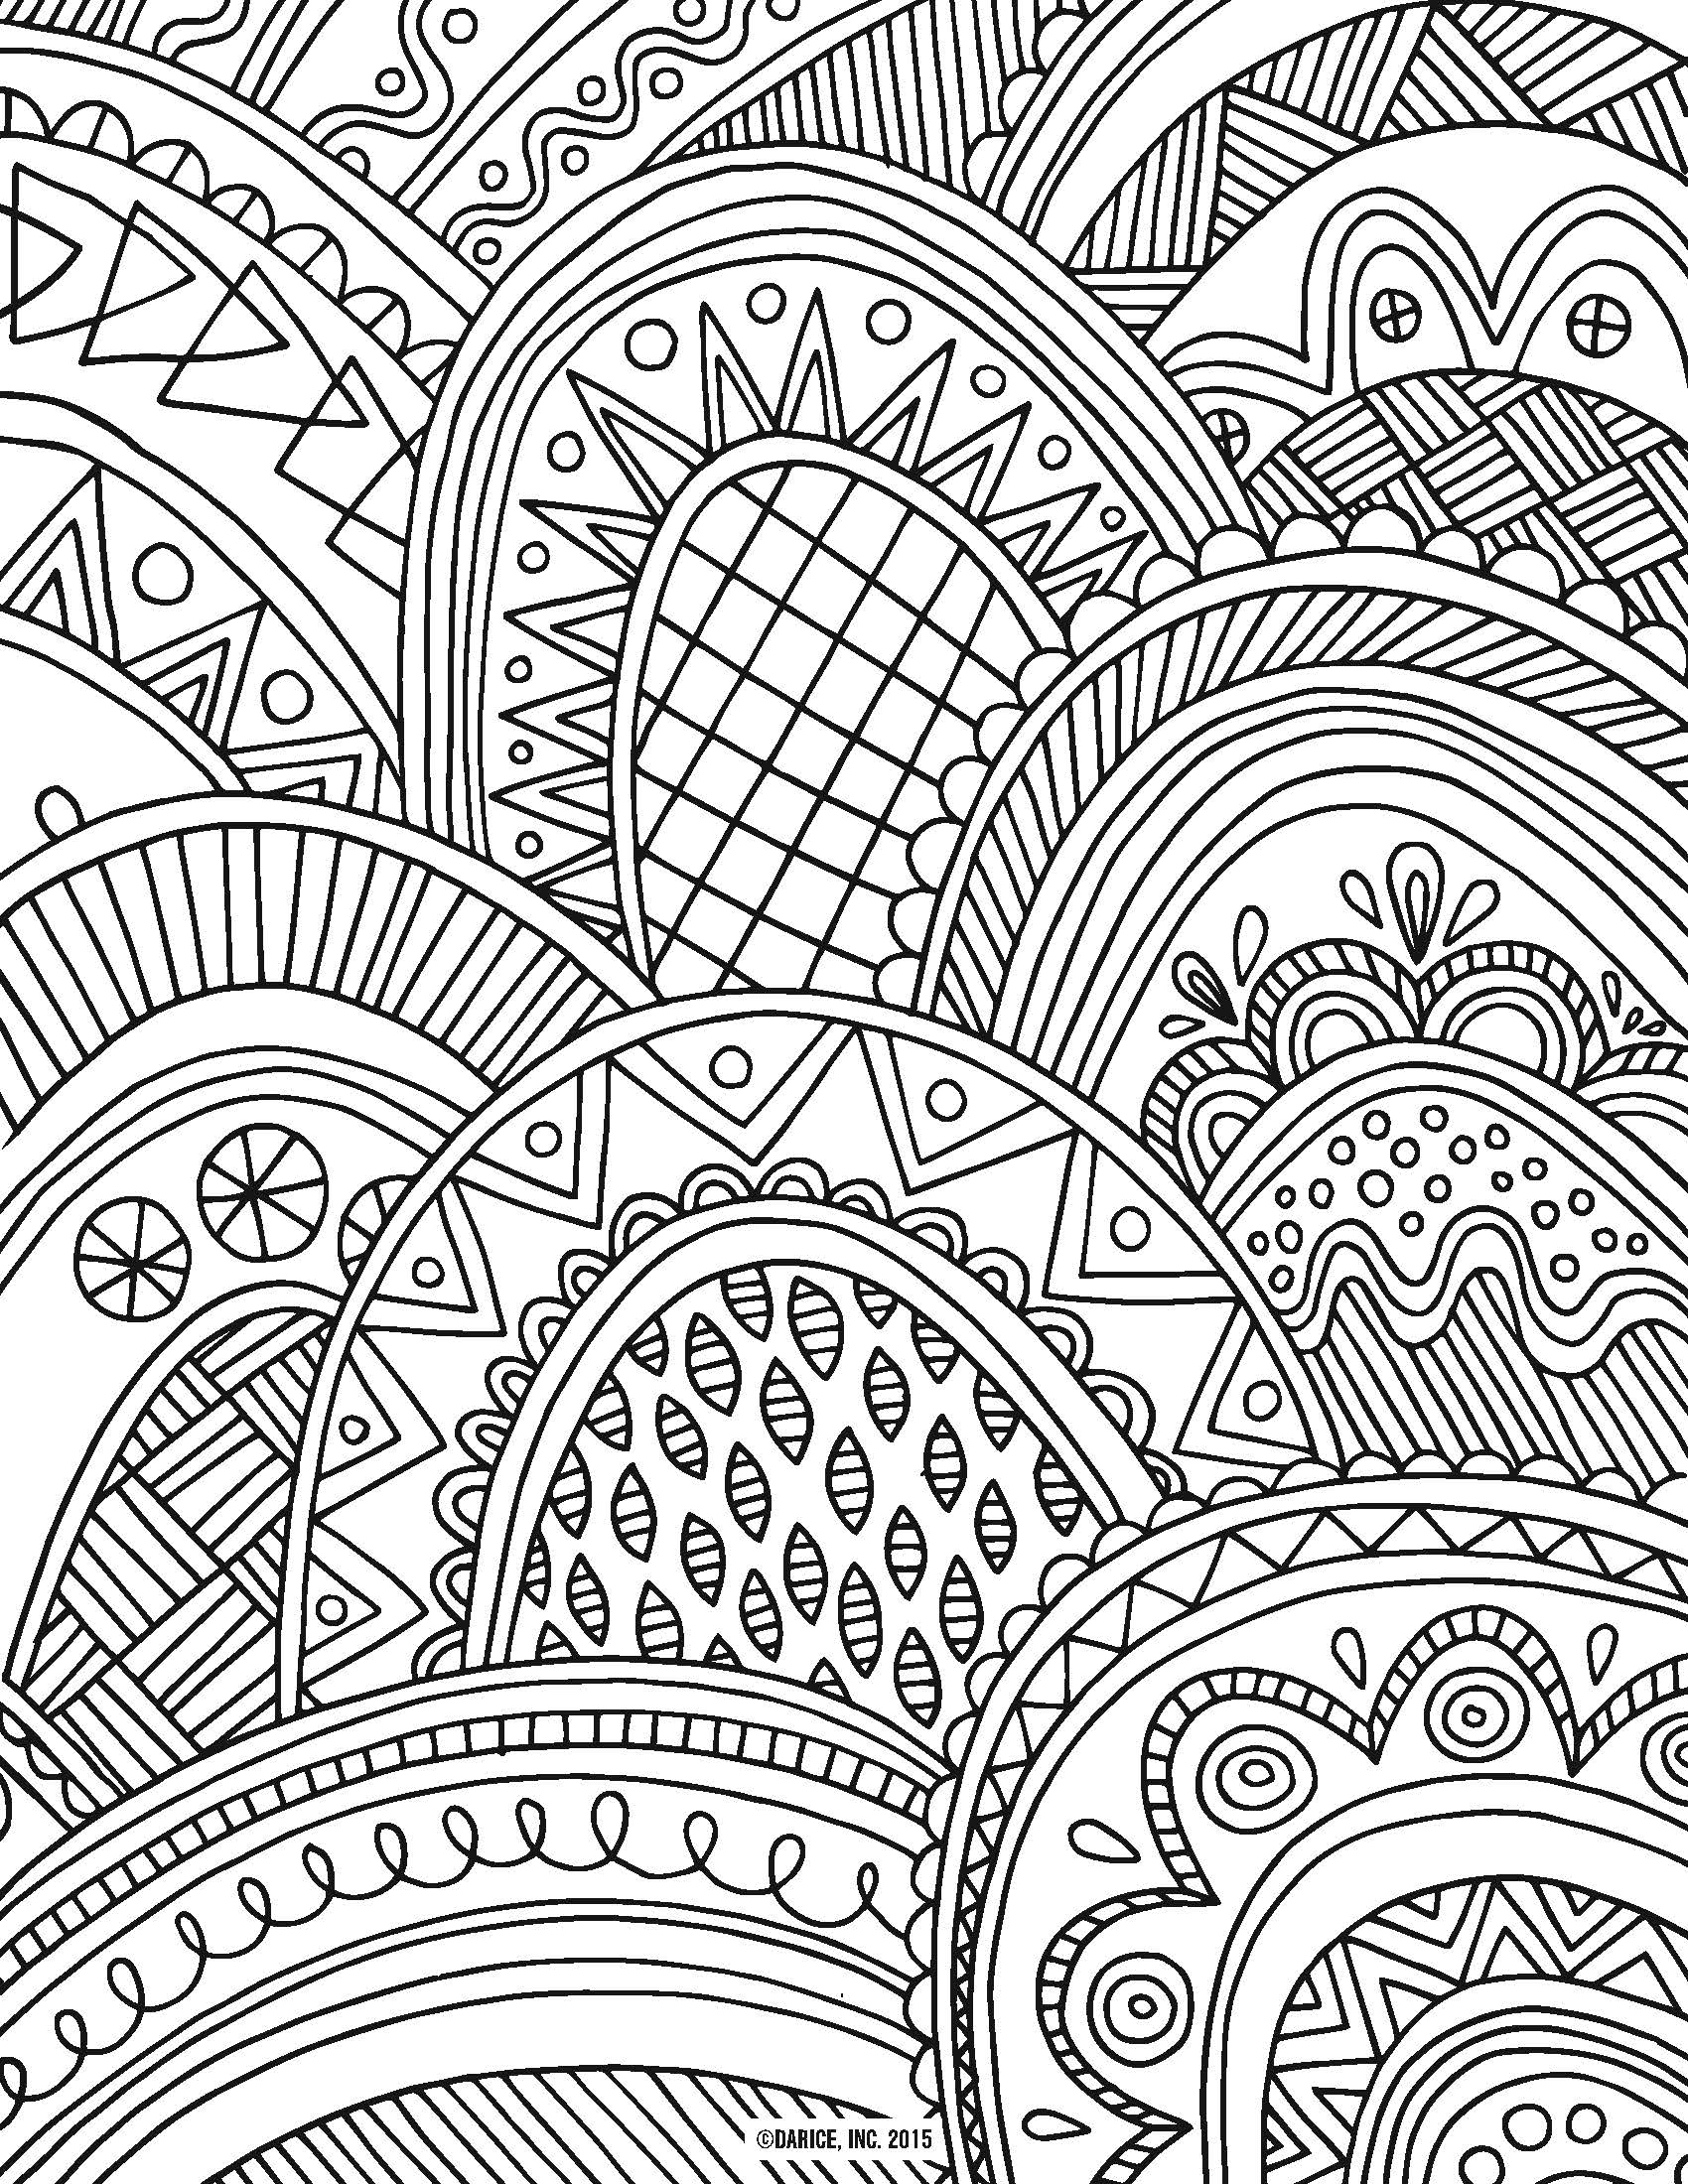 coloring pictures for adults adult coloring pages animals best coloring pages for kids adults coloring pictures for 1 1